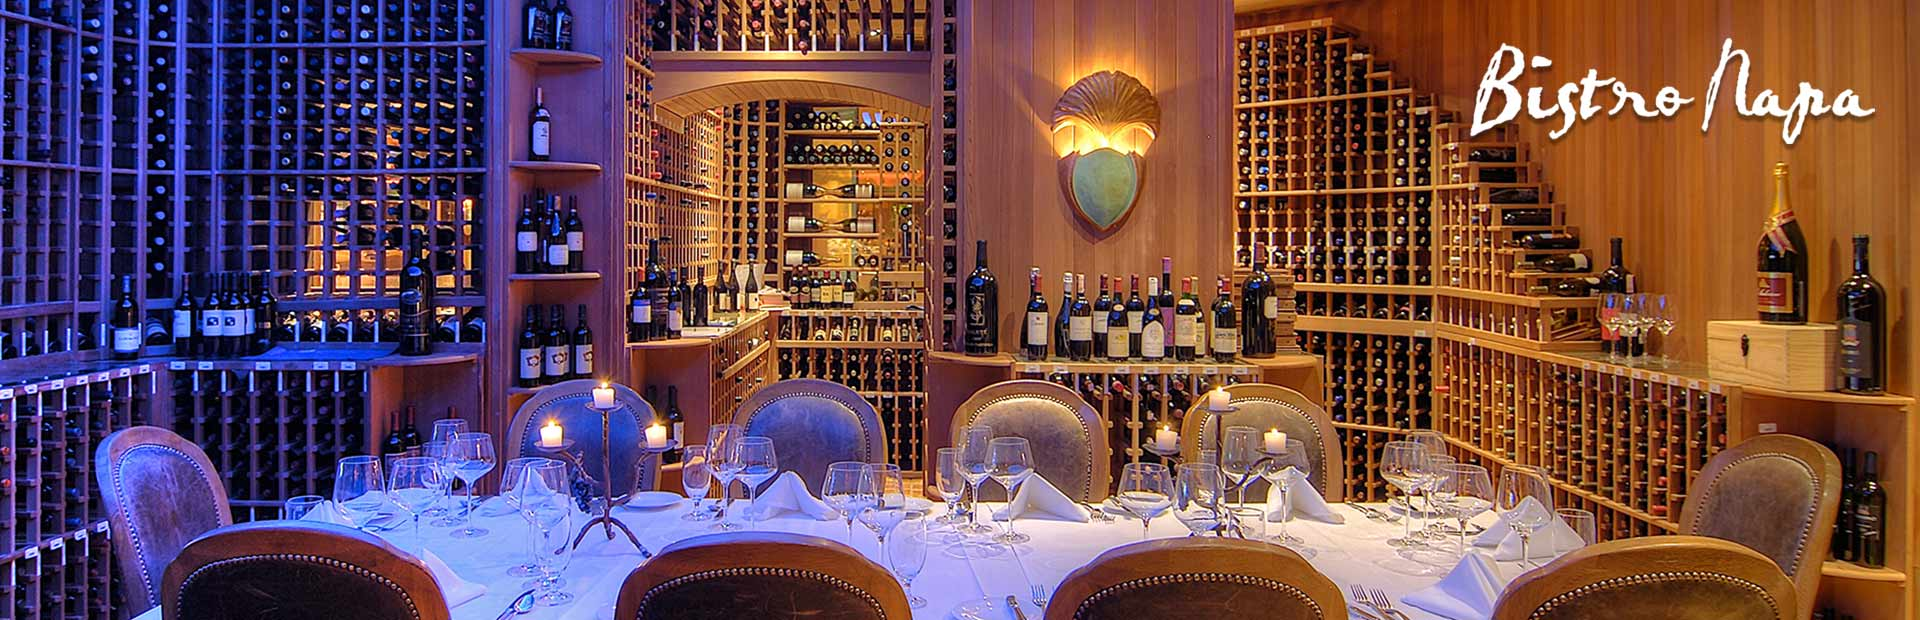 Wine Room Bistro Napa at Atlantis